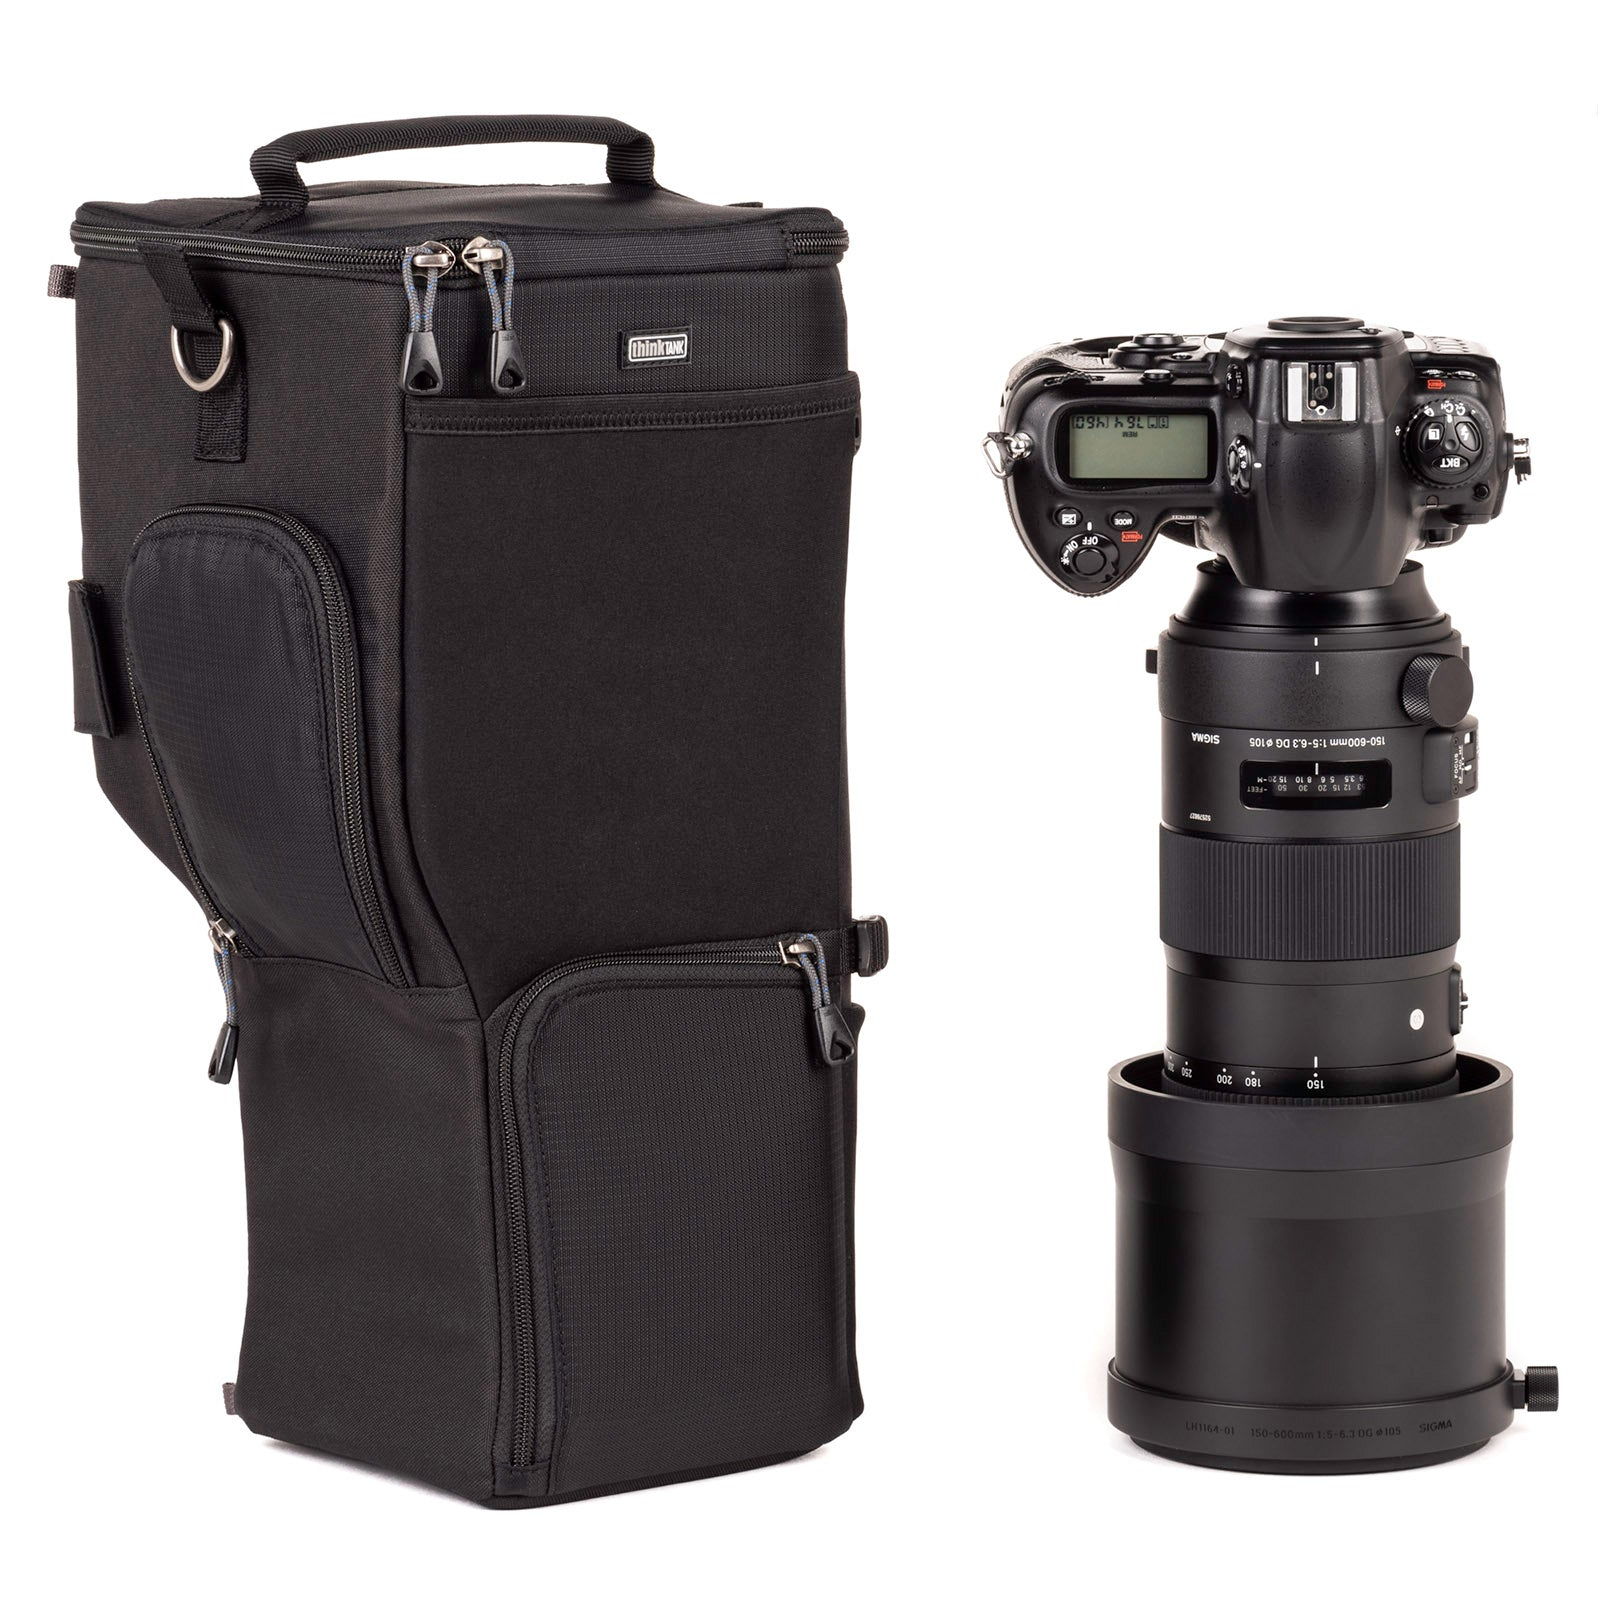 Designed to form fit a 150–600mm or equivalent sized lens with body attached